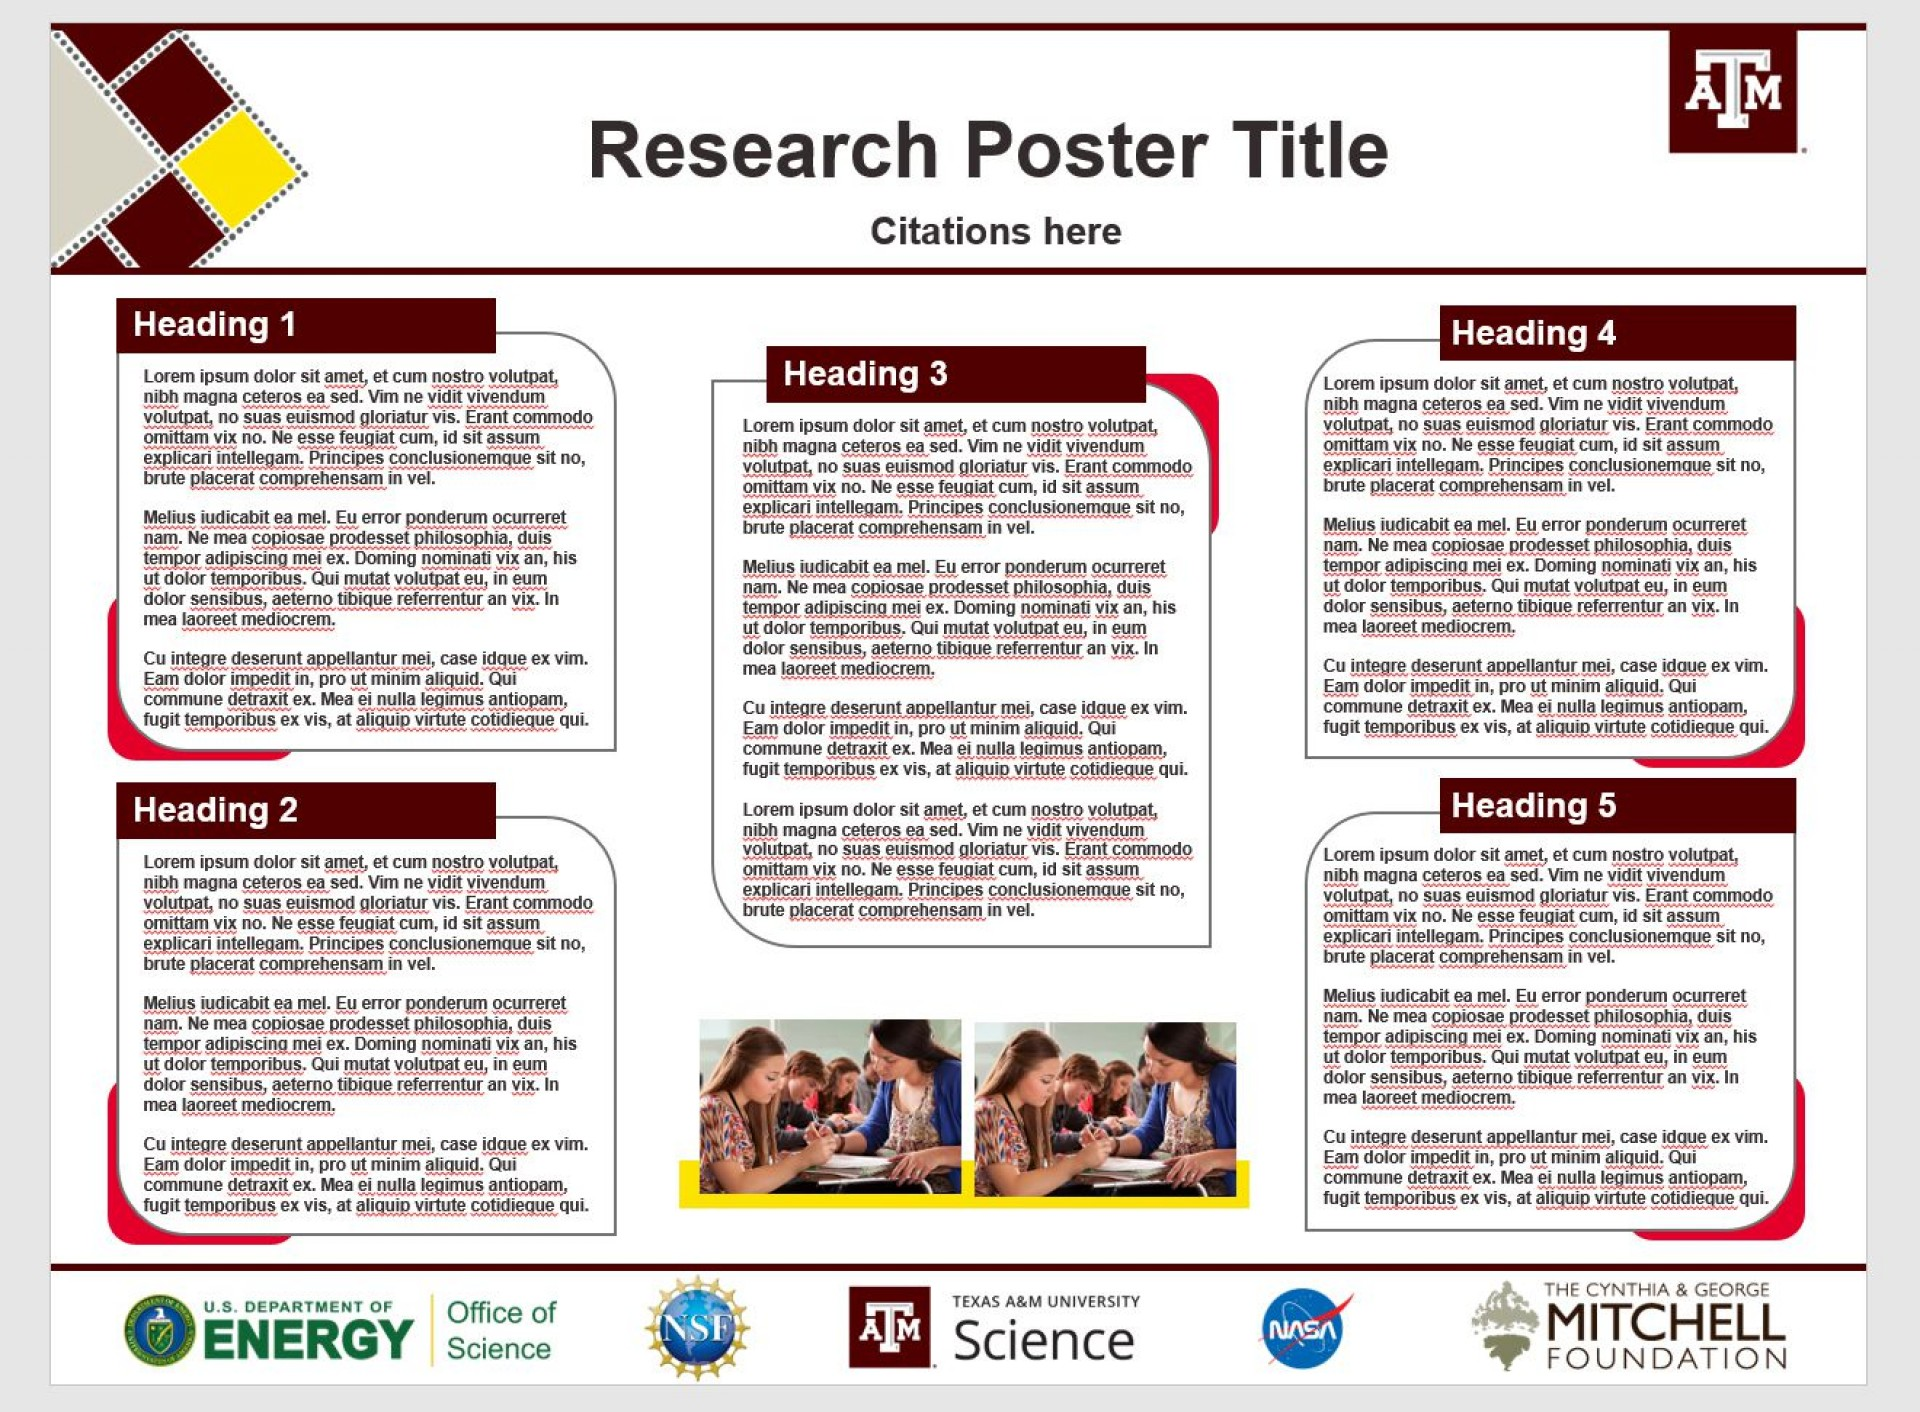 009 Frightening Research Poster Template Powerpoint Highest Clarity  Scientific Ppt1920